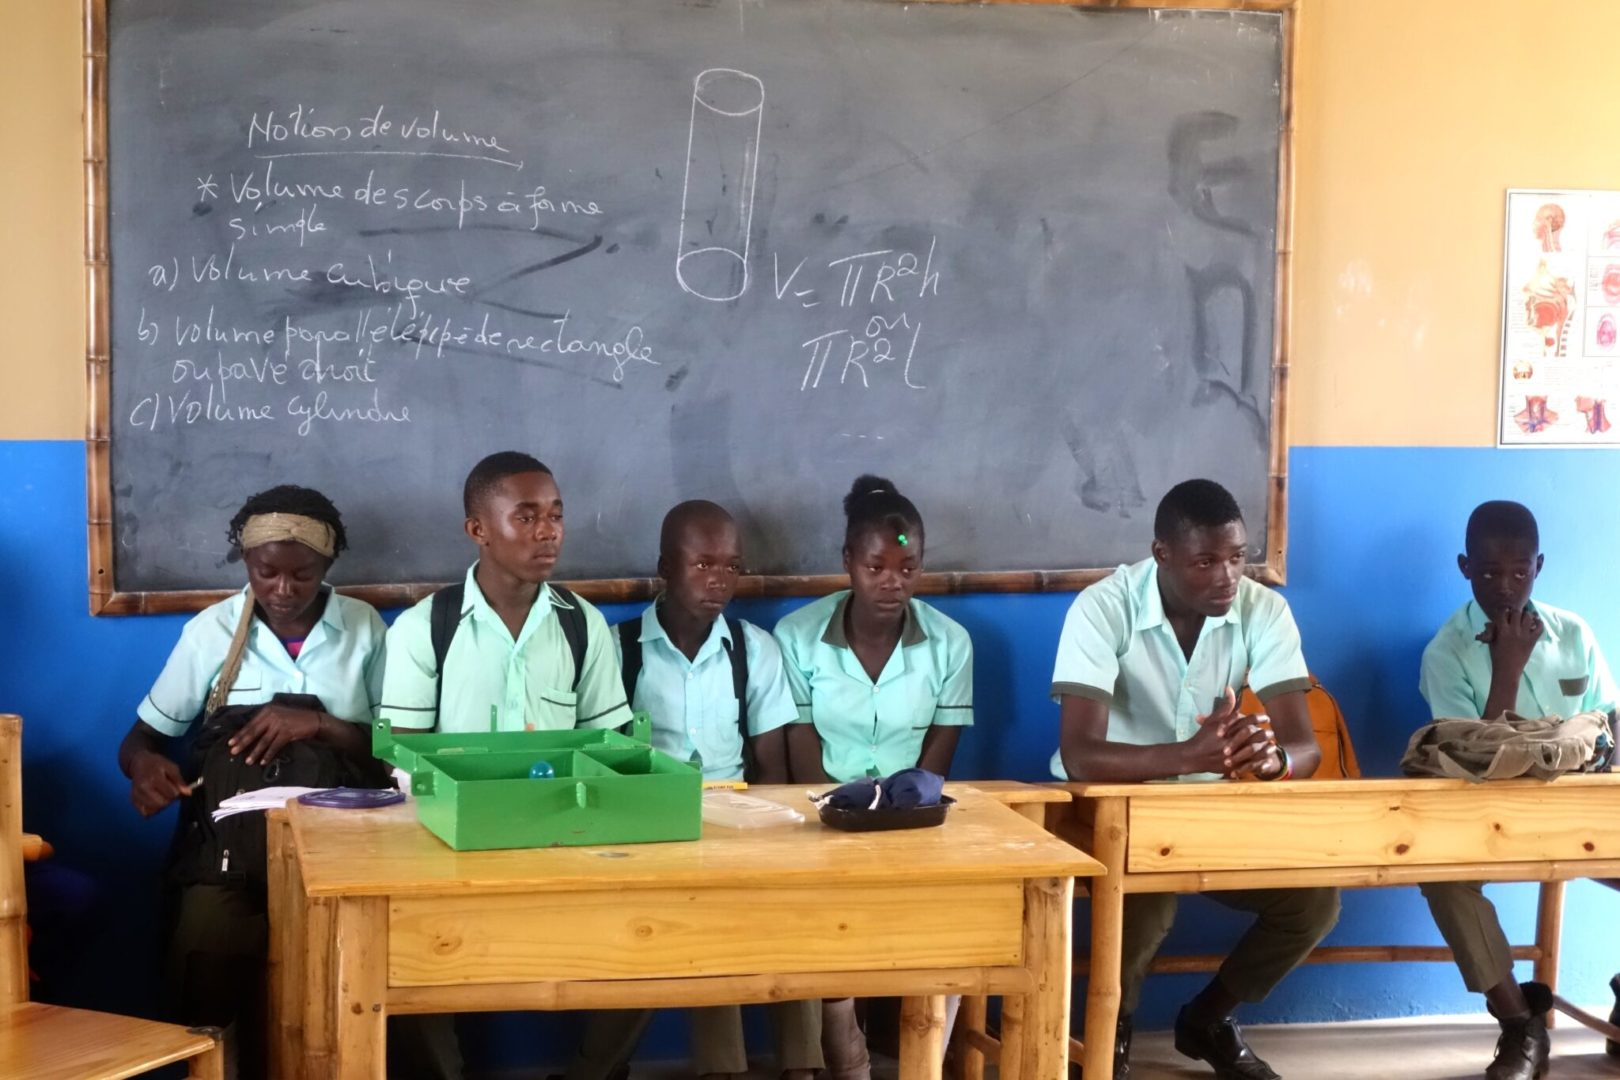 Middle schoolers at a group meeting in Haiti